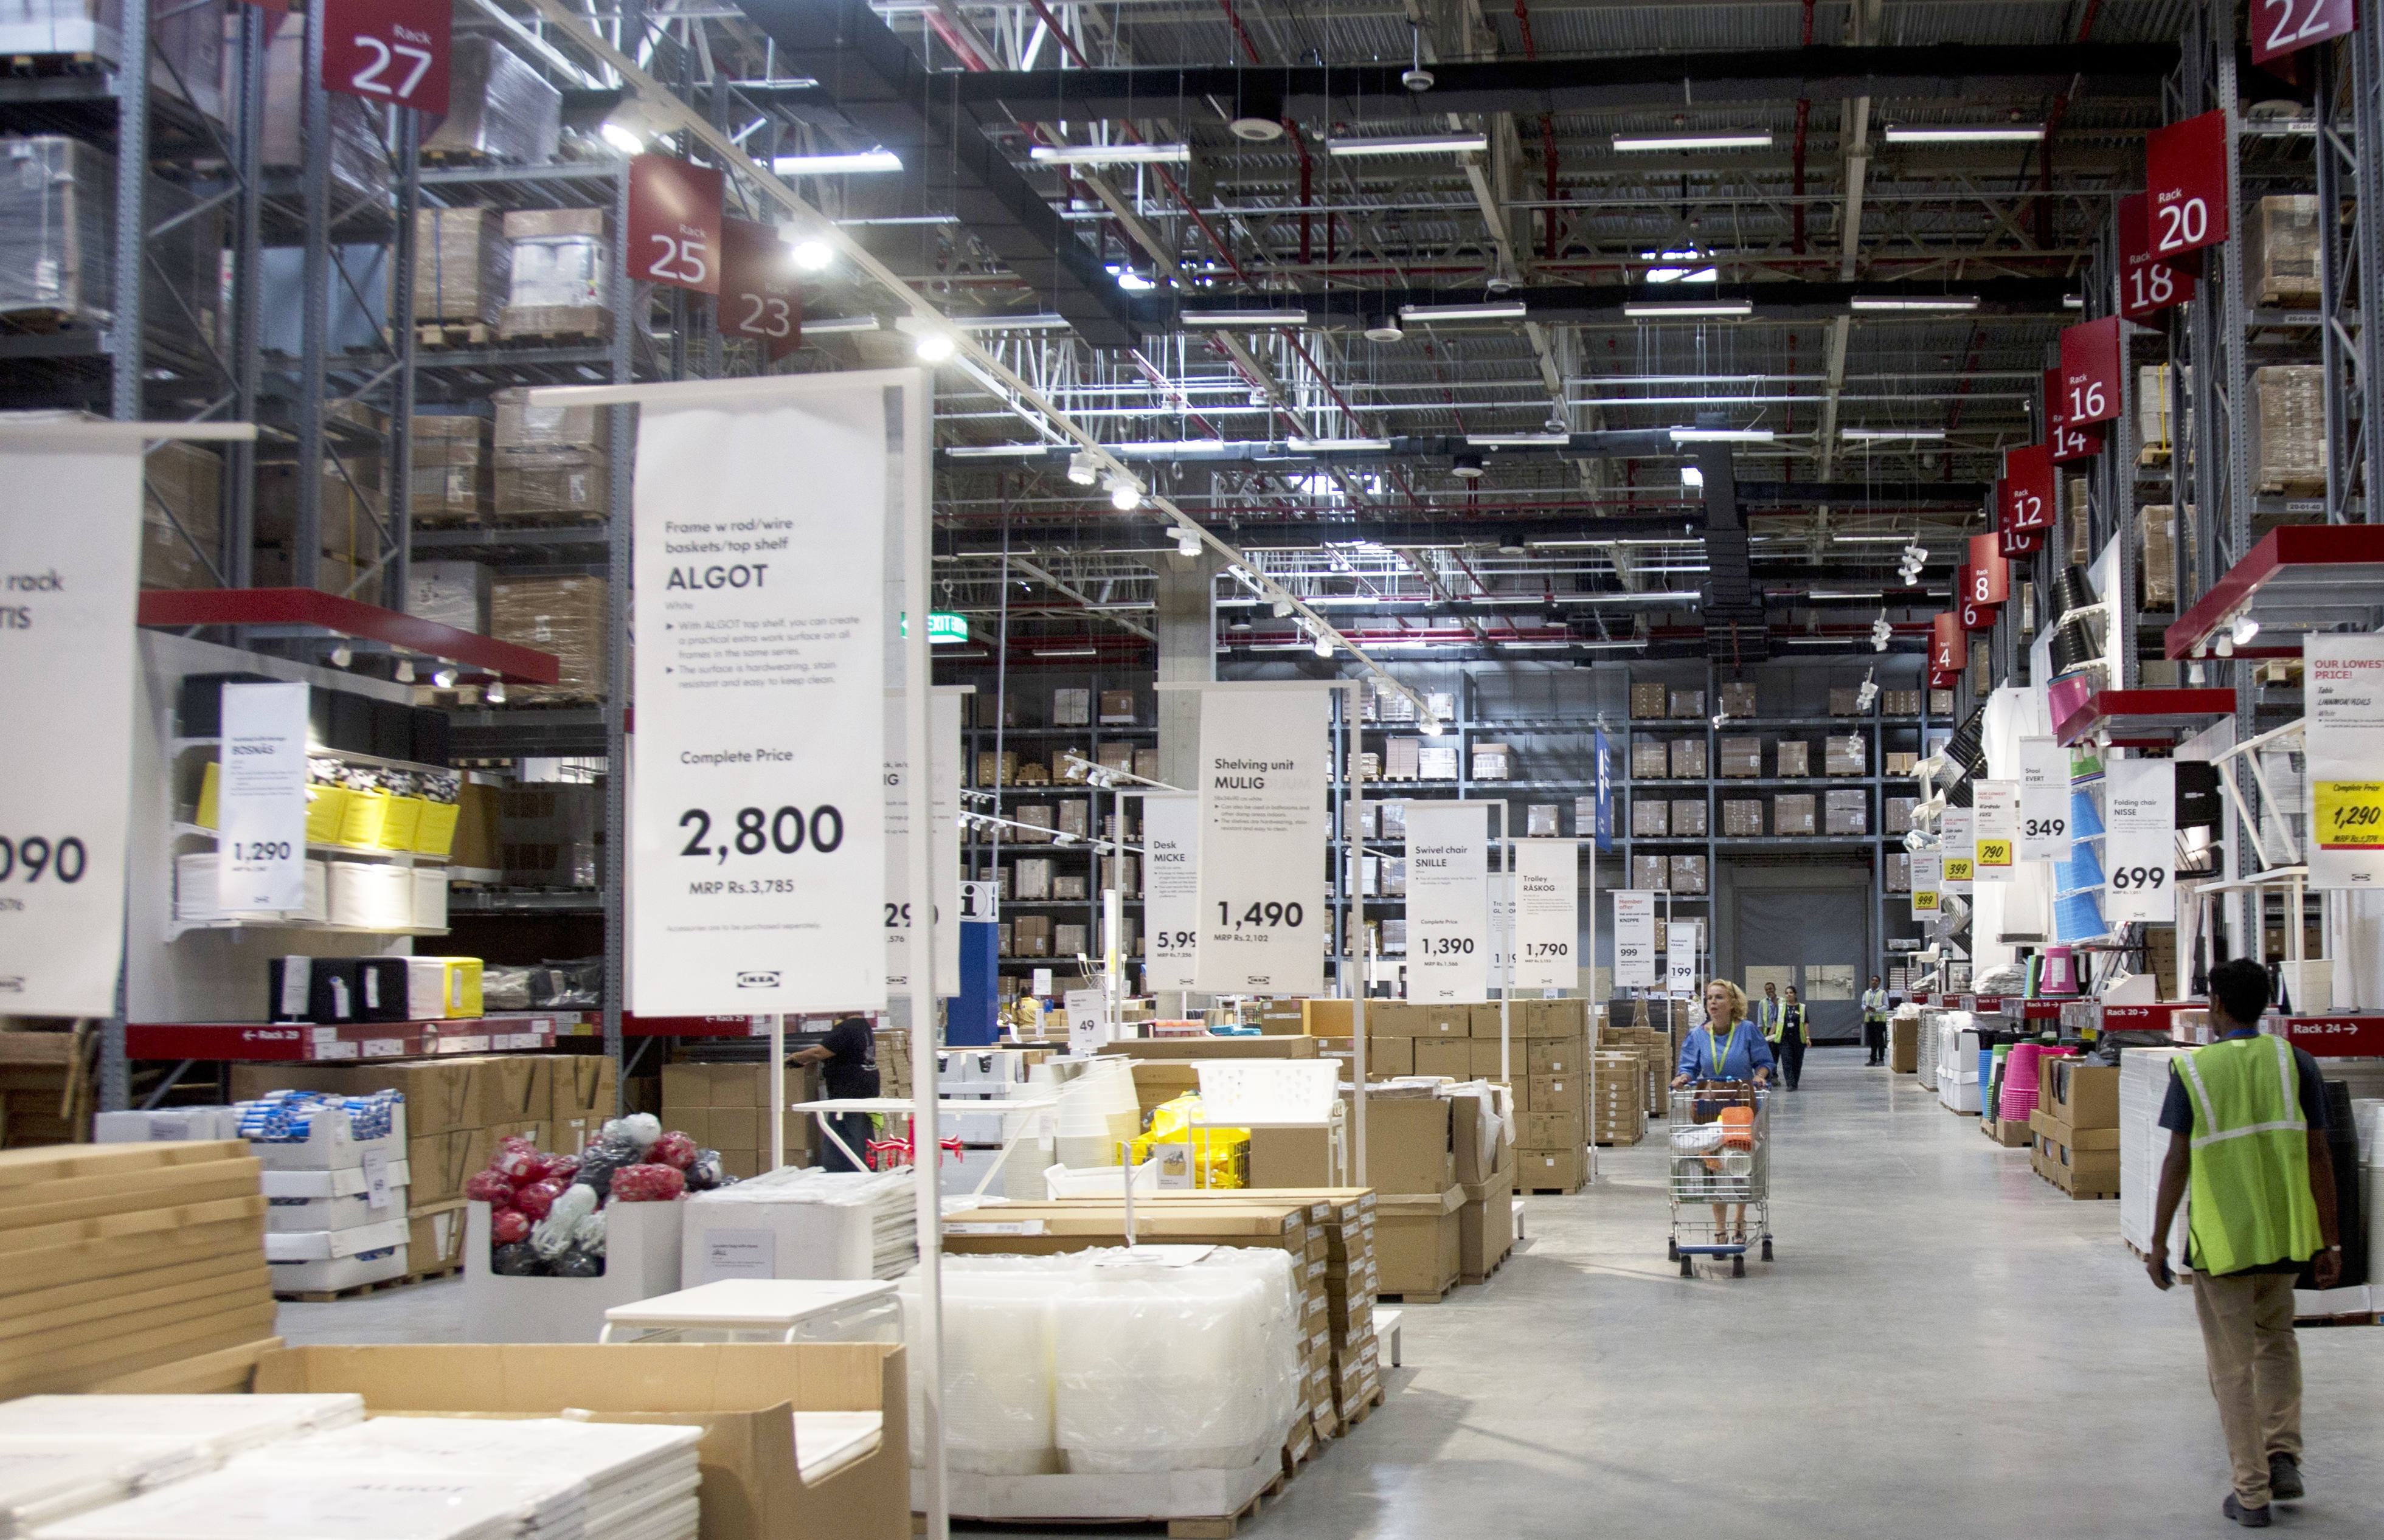 IKEA to cut 7,500 jobs globally, but creates 11,500 new ones